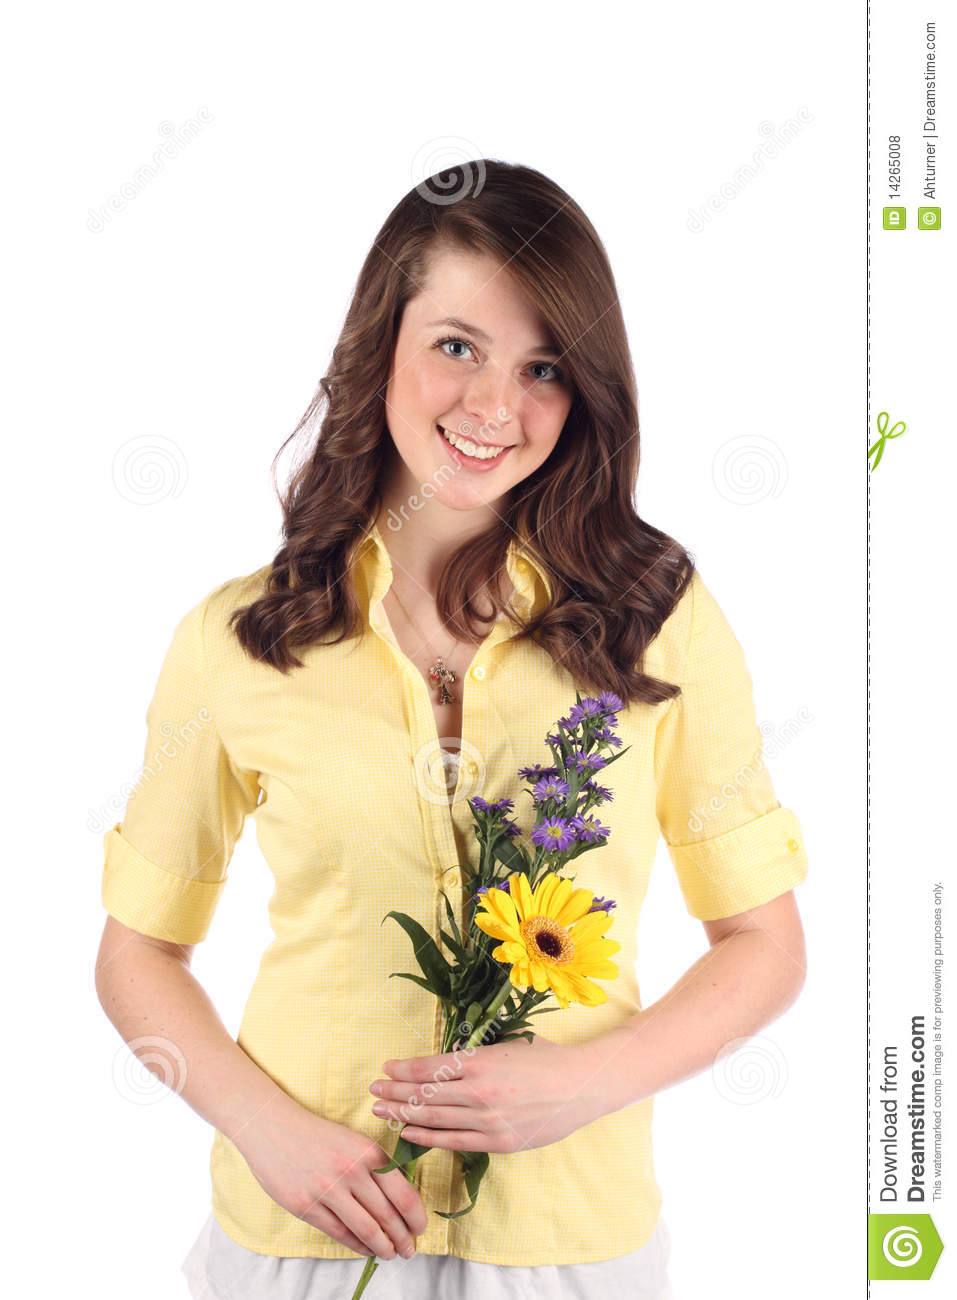 Http Www Dreamstime Com Royalty Free Stock Photos Pretty Teen Flowers Image14265008